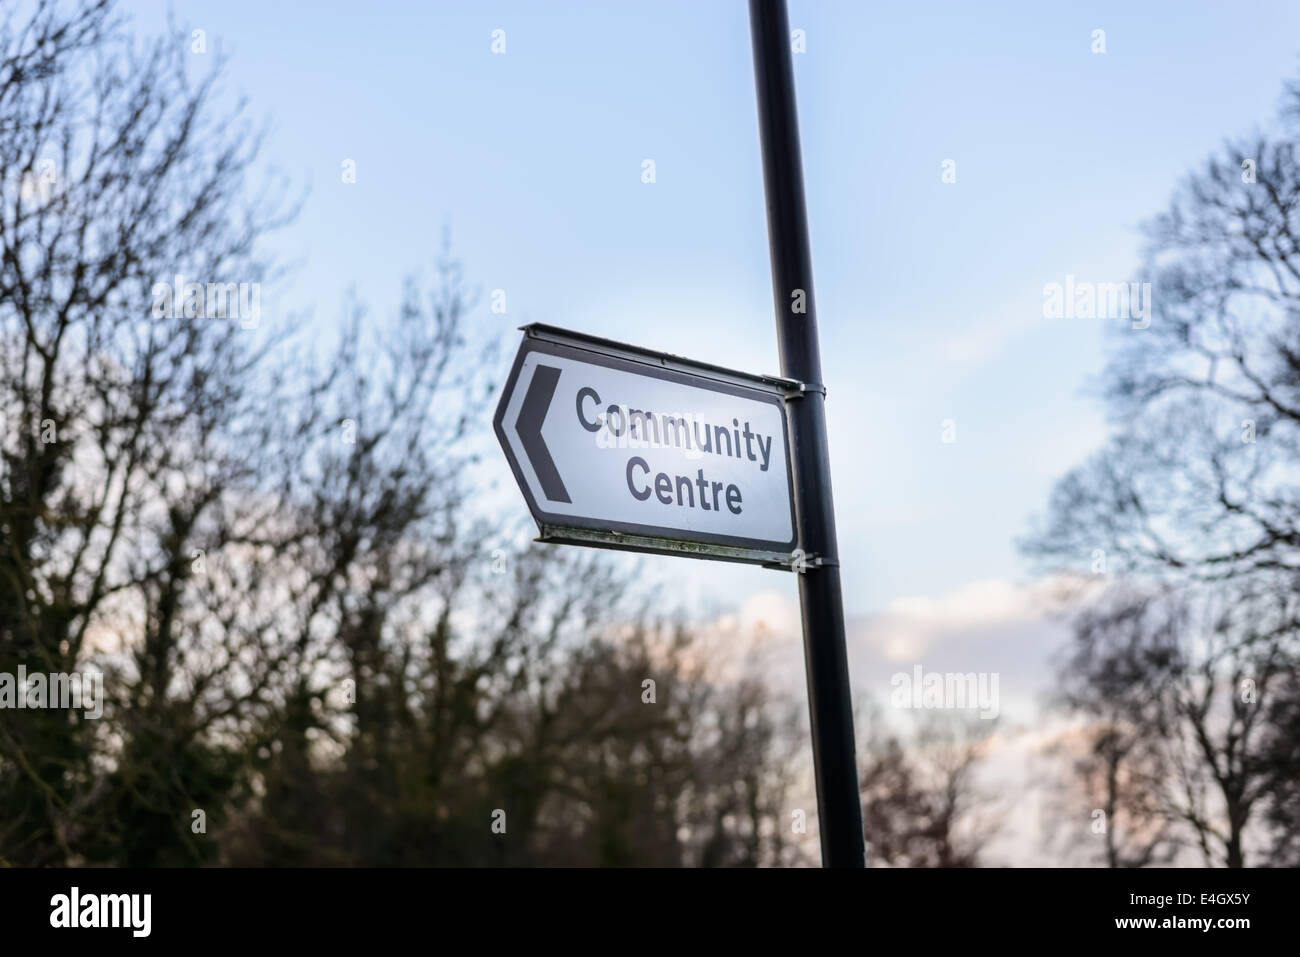 British 'Community Centre' center road sign with arrow, elevated on a post on a road. - Stock Image